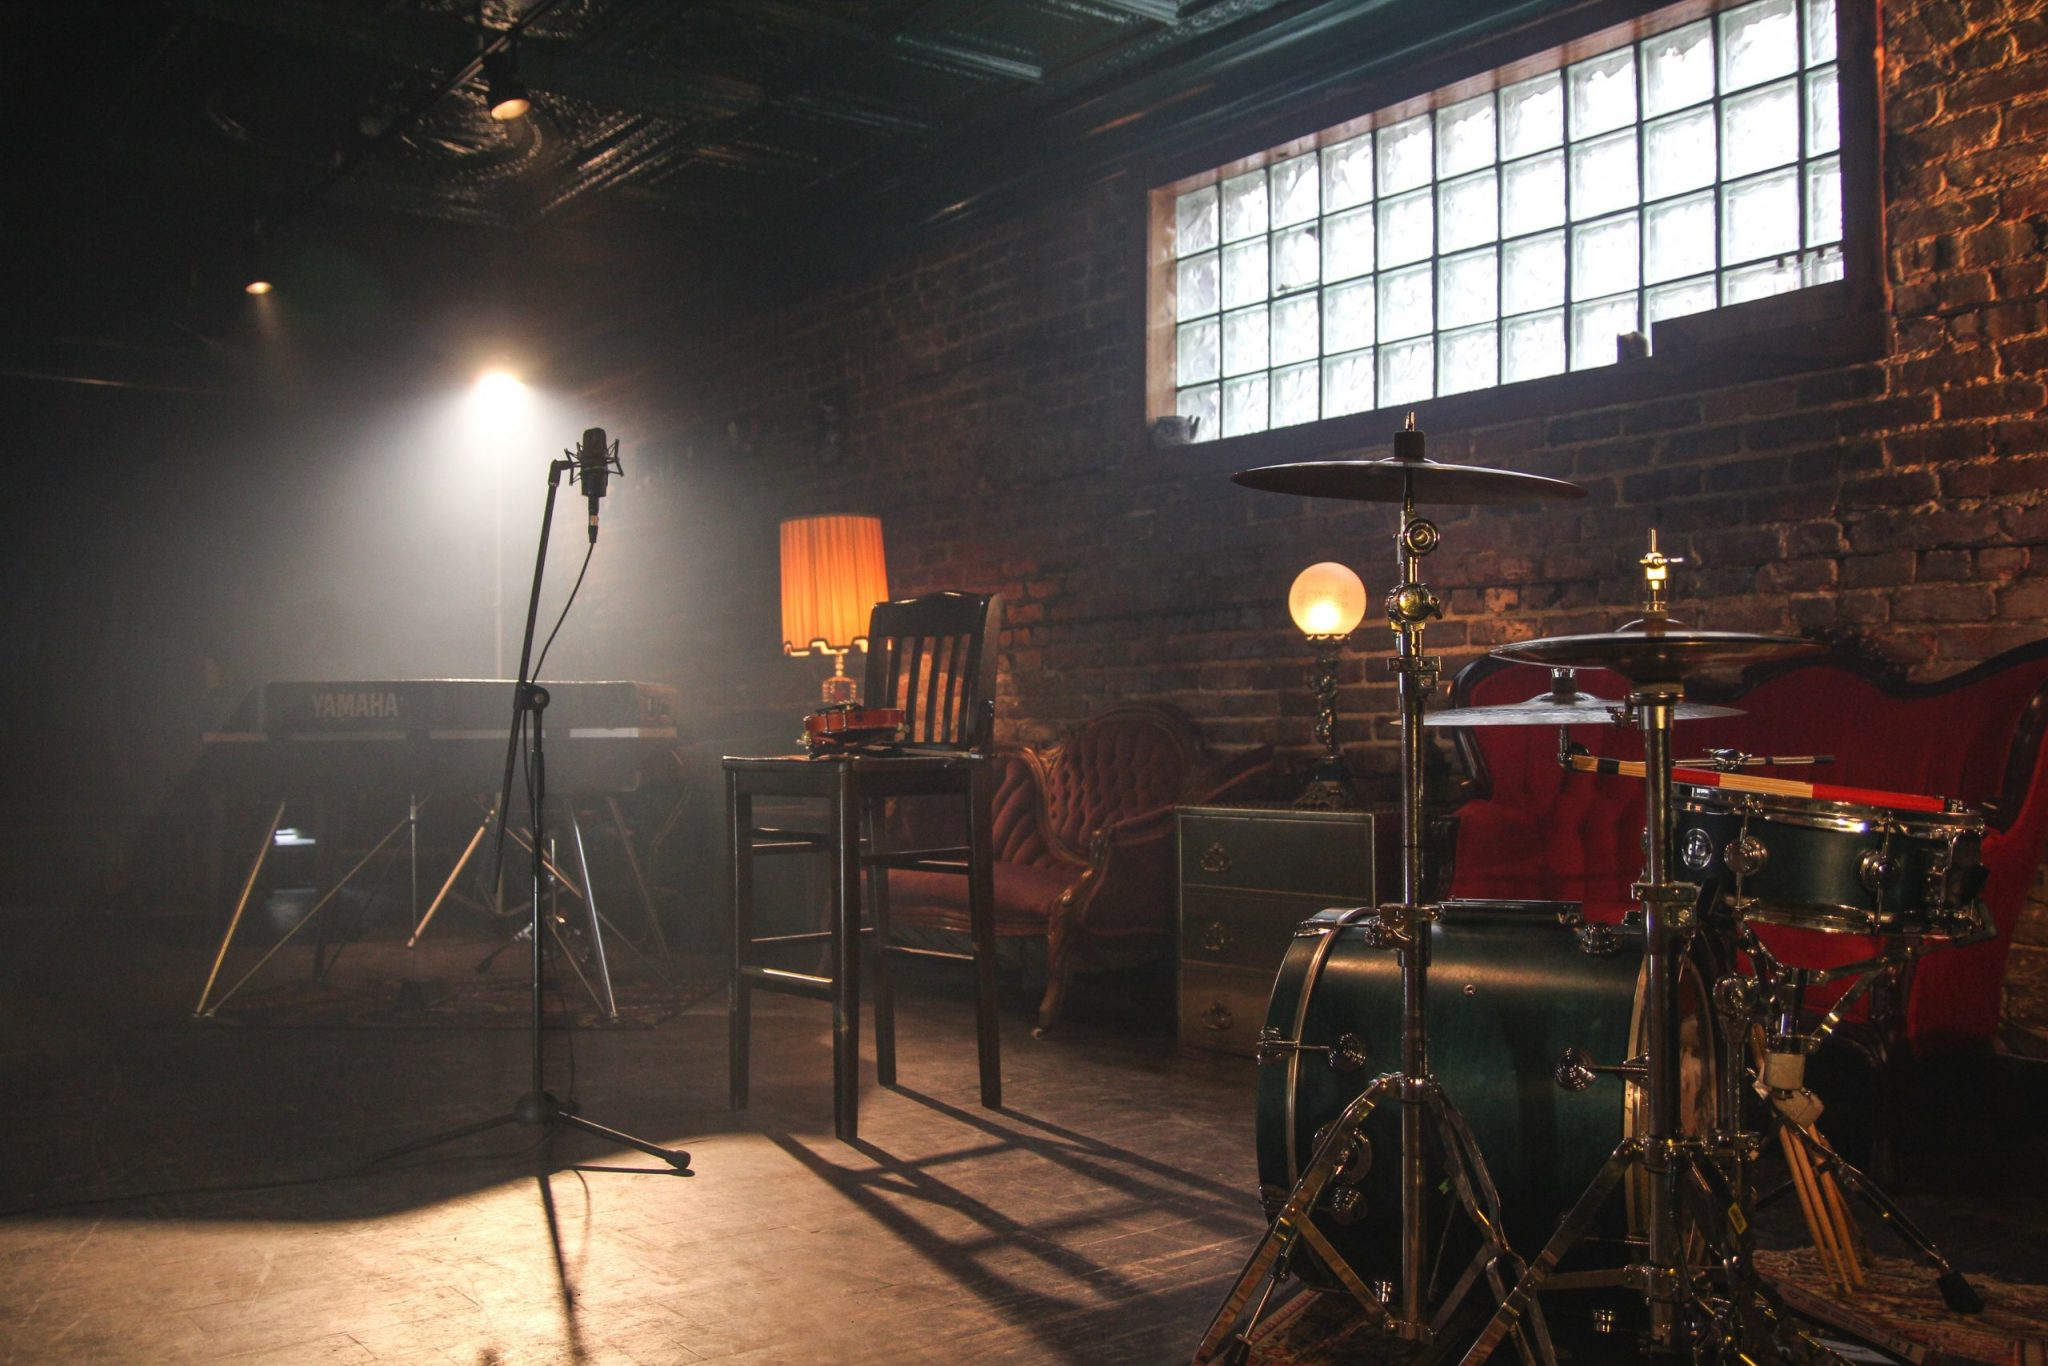 A stage music set